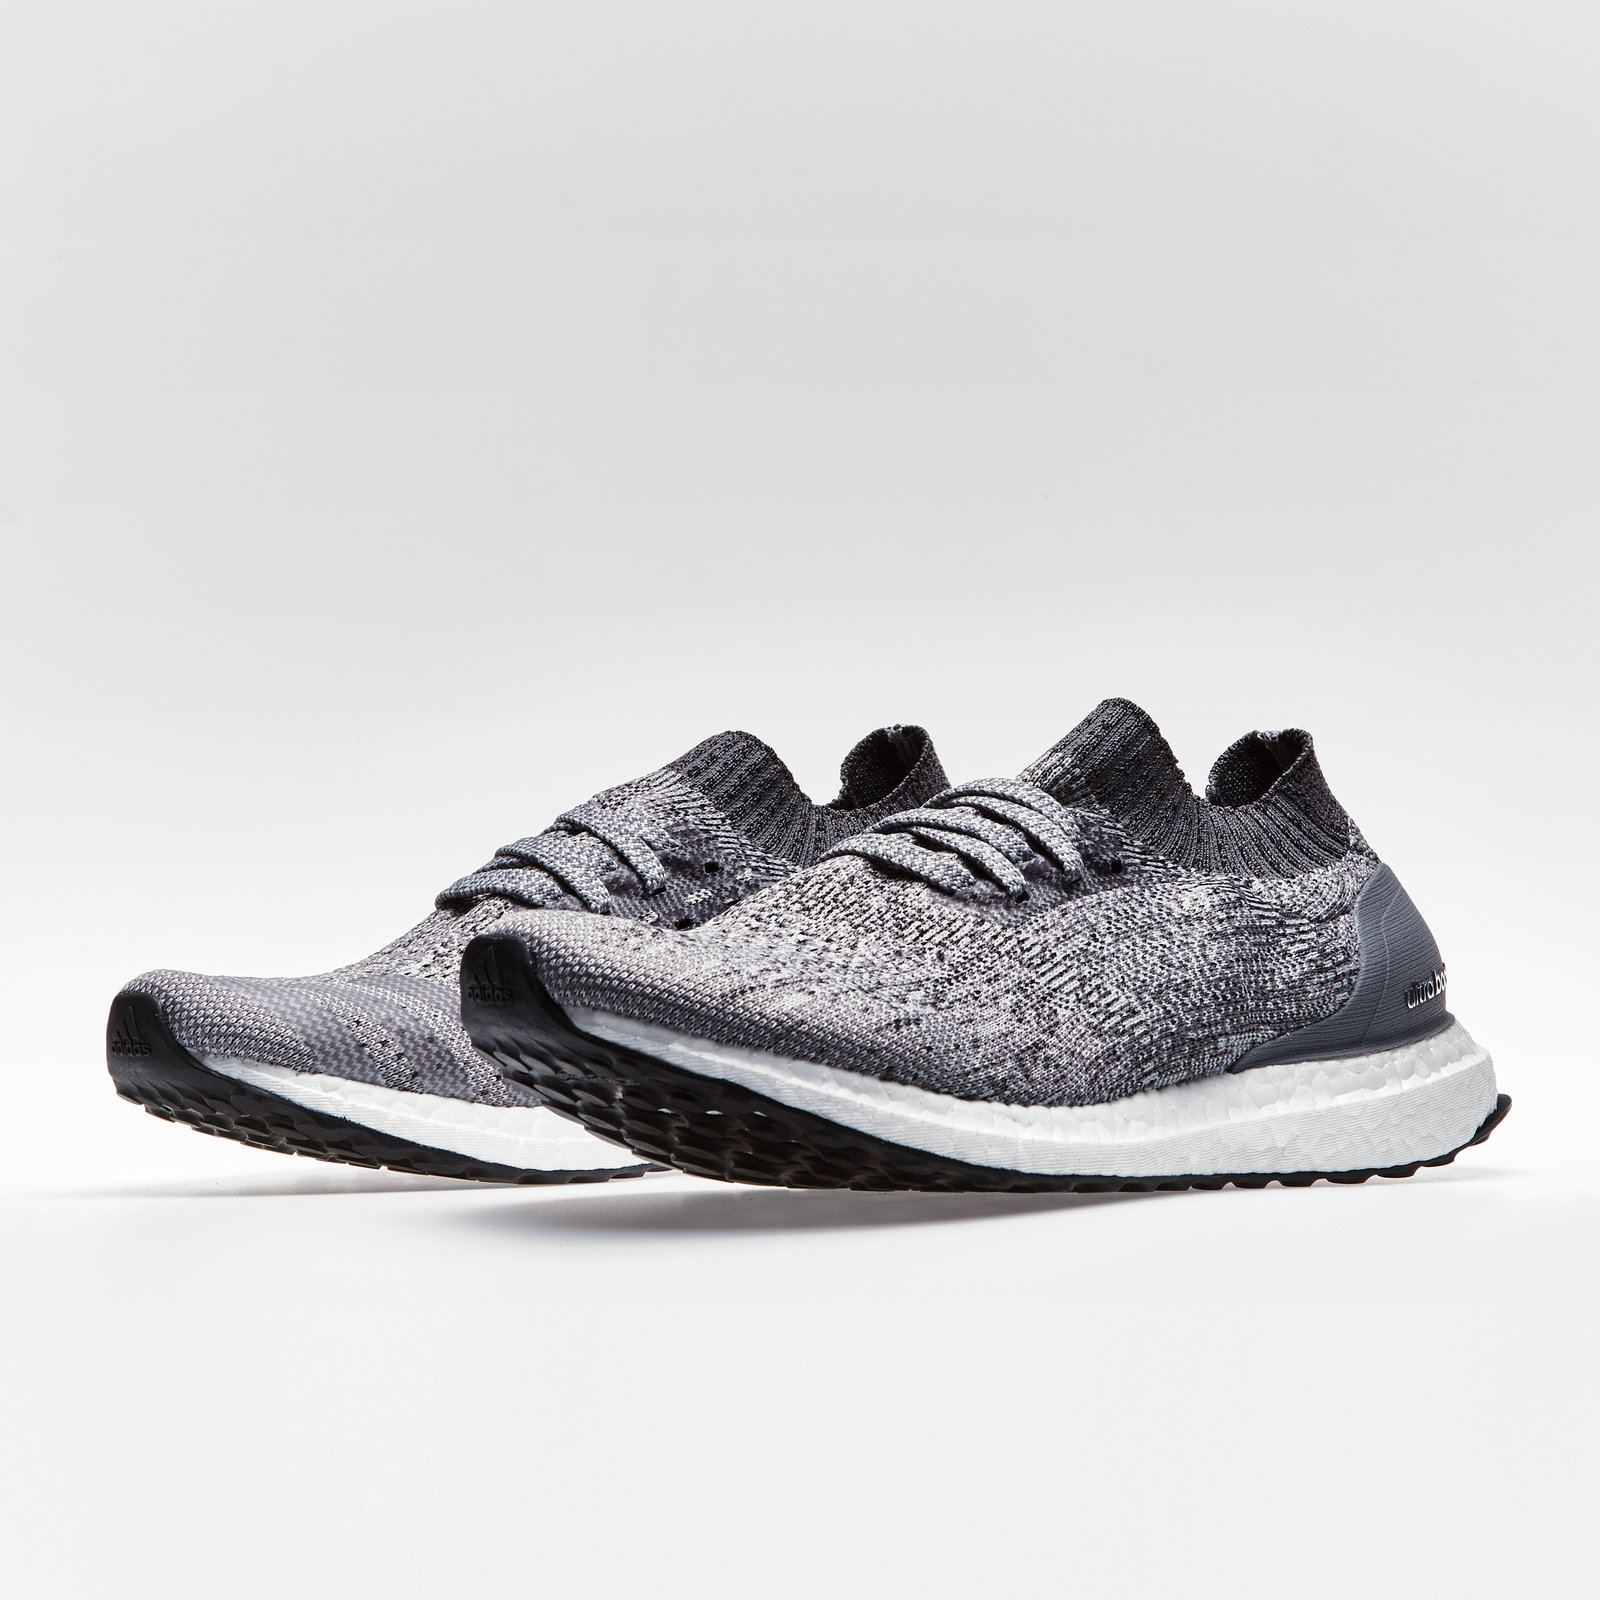 sports shoes 2e4c9 49ccd Details about adidas Mens Ultra Boost Uncaged Running Shoes Sports Trainers  Grey Footwear